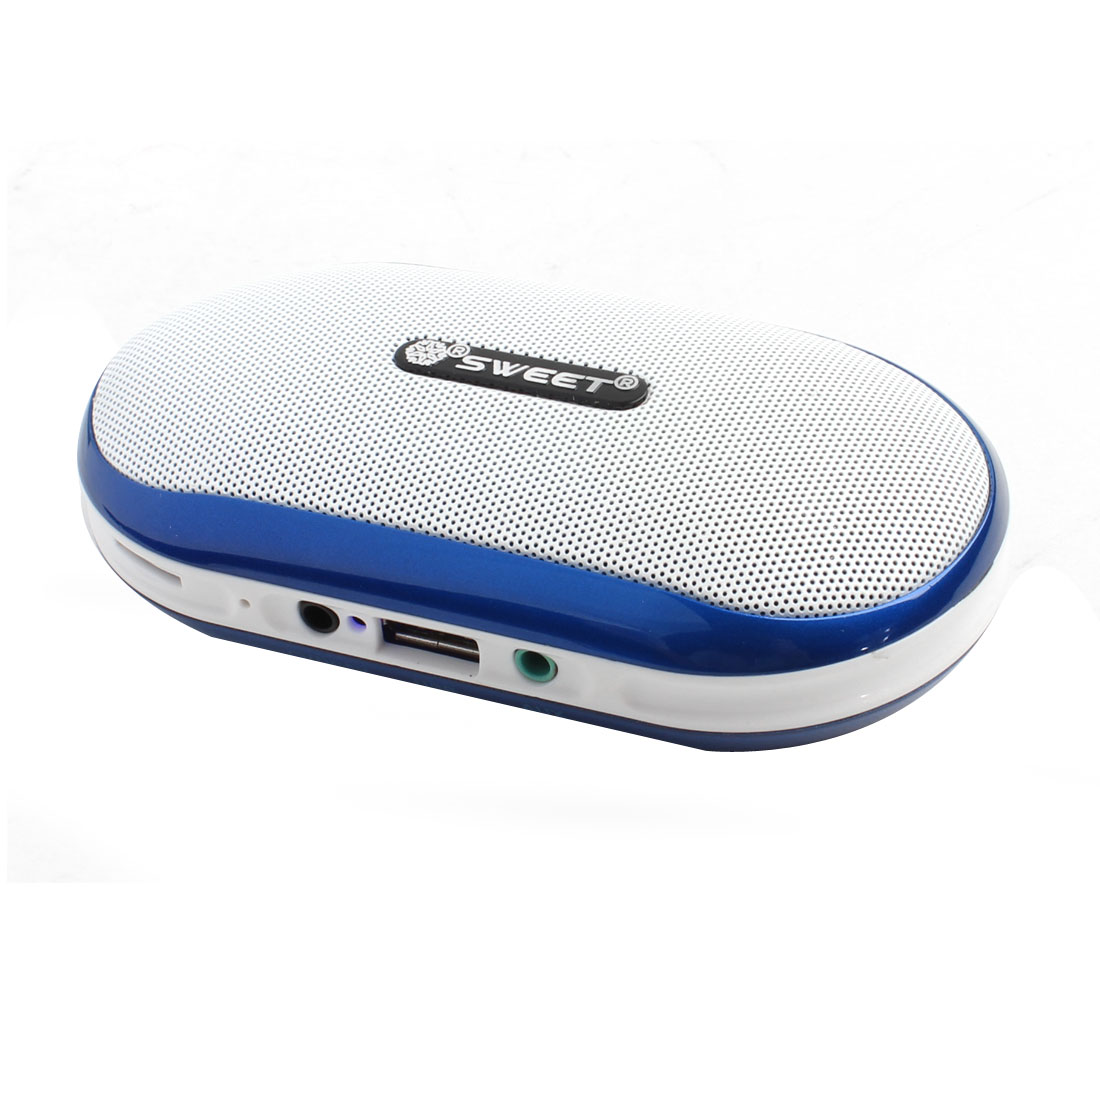 Computer Mobile Phone USB FM Radio 76-108MHZ White Blue Multifuction Mini Speaker